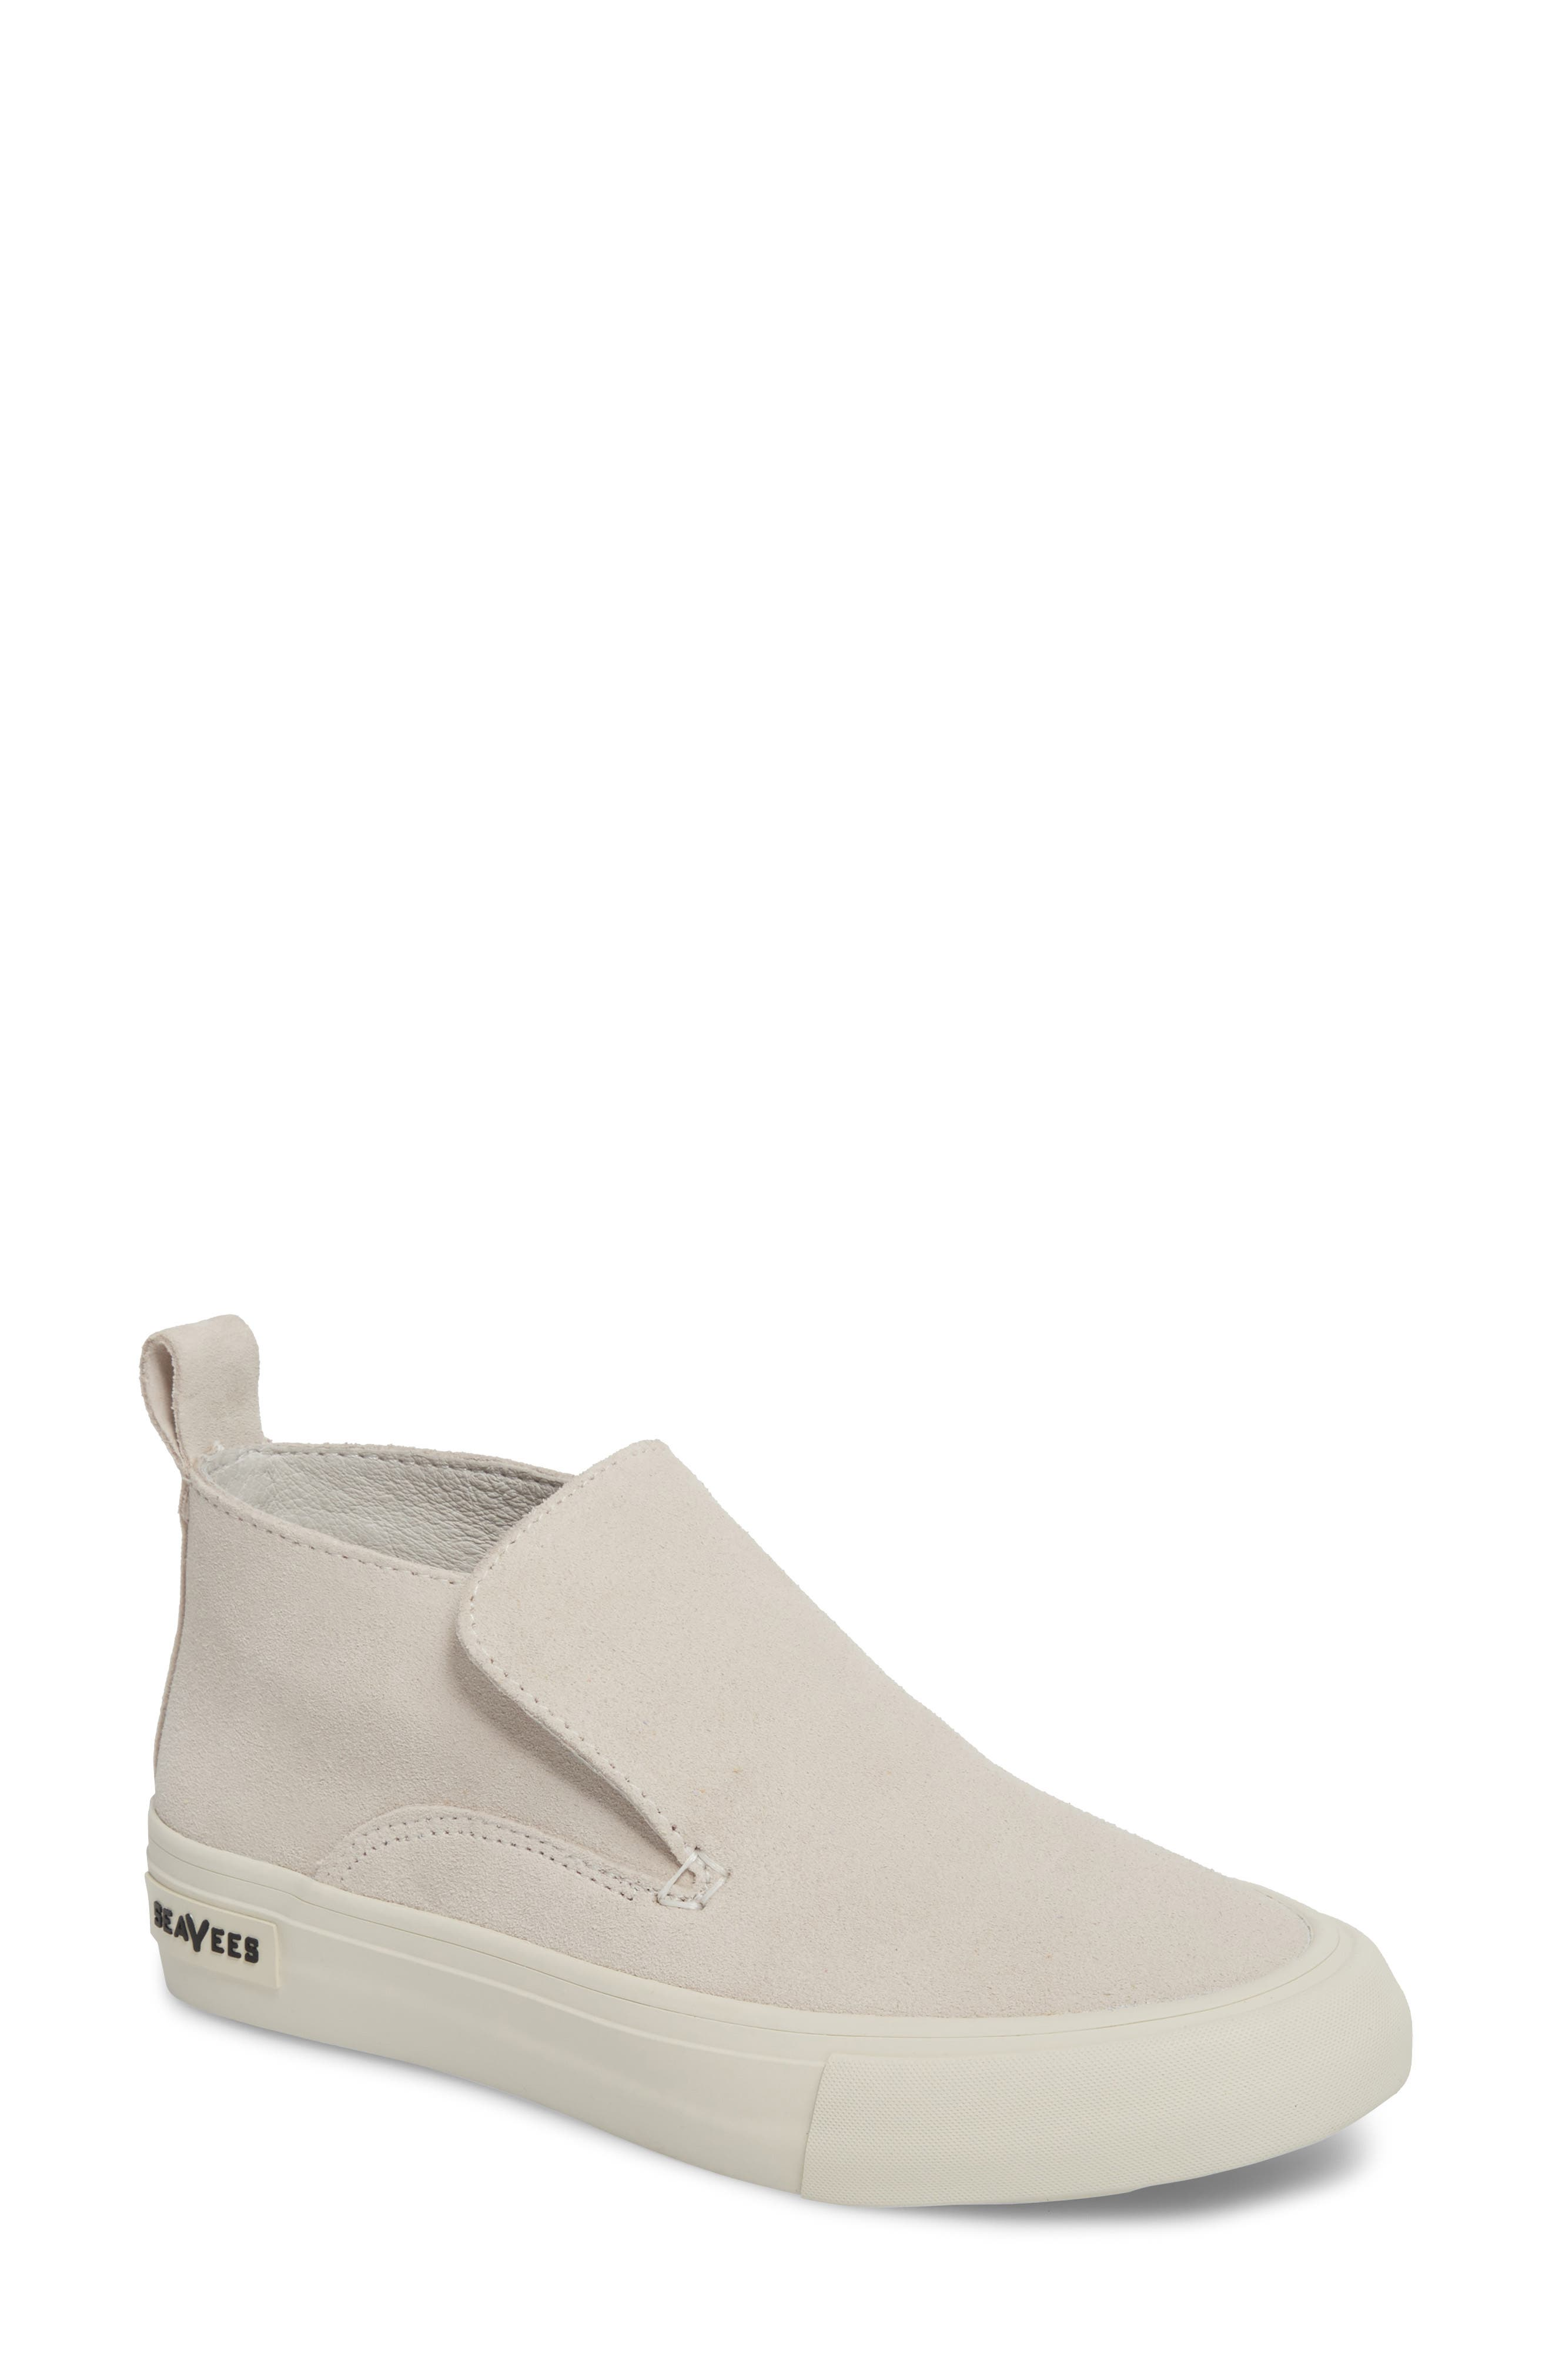 Huntington Middie Slip-On Sneaker, Main, color, OYSTER